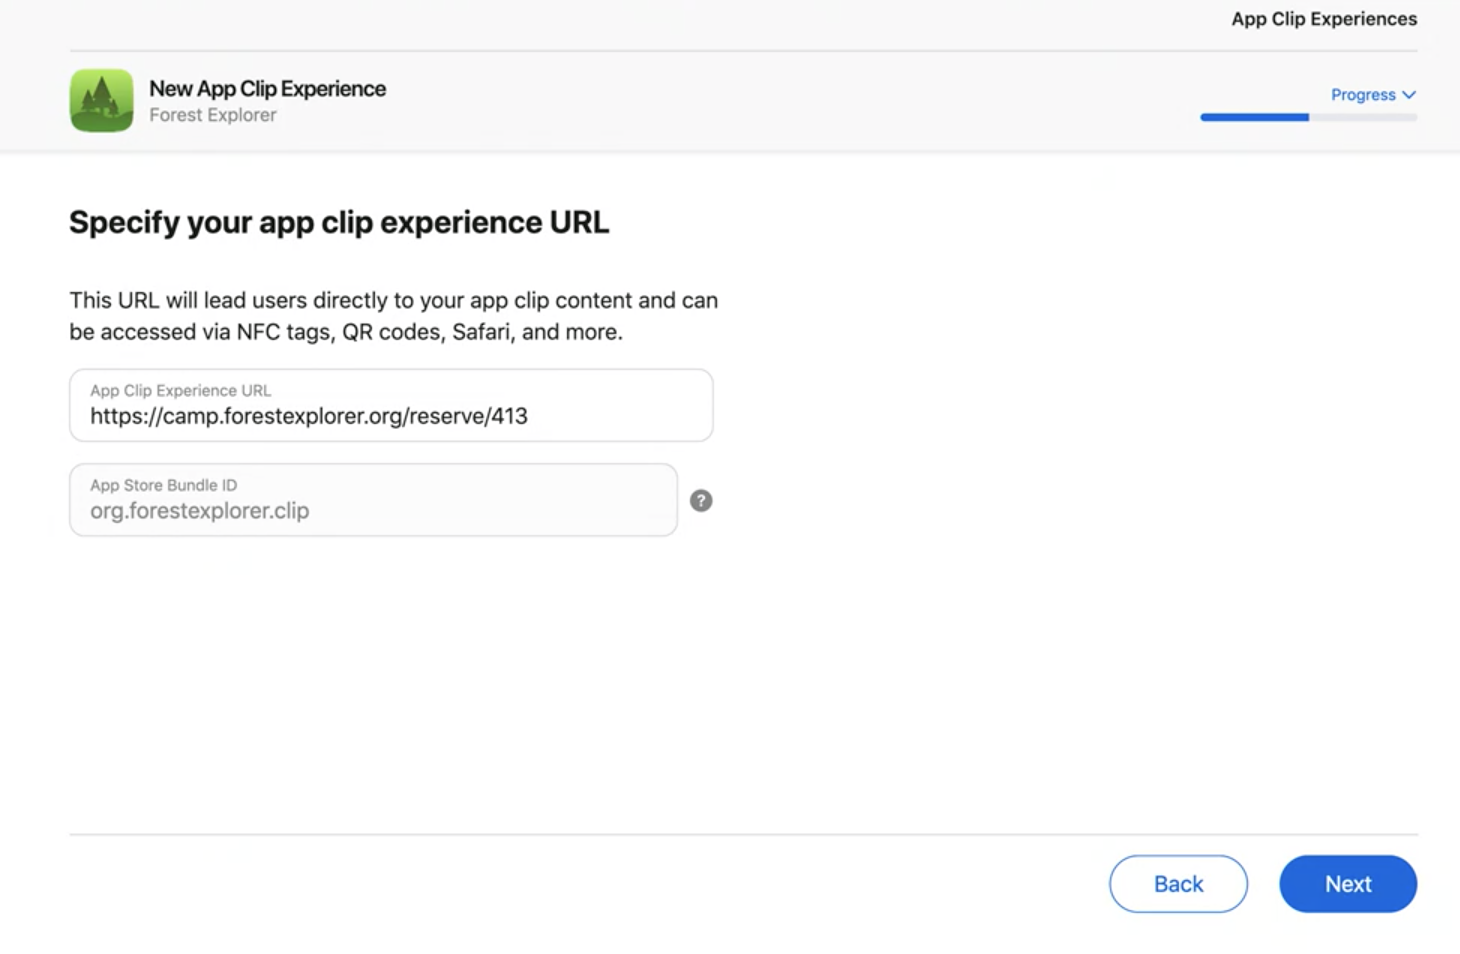 App Clip Experience URL specification